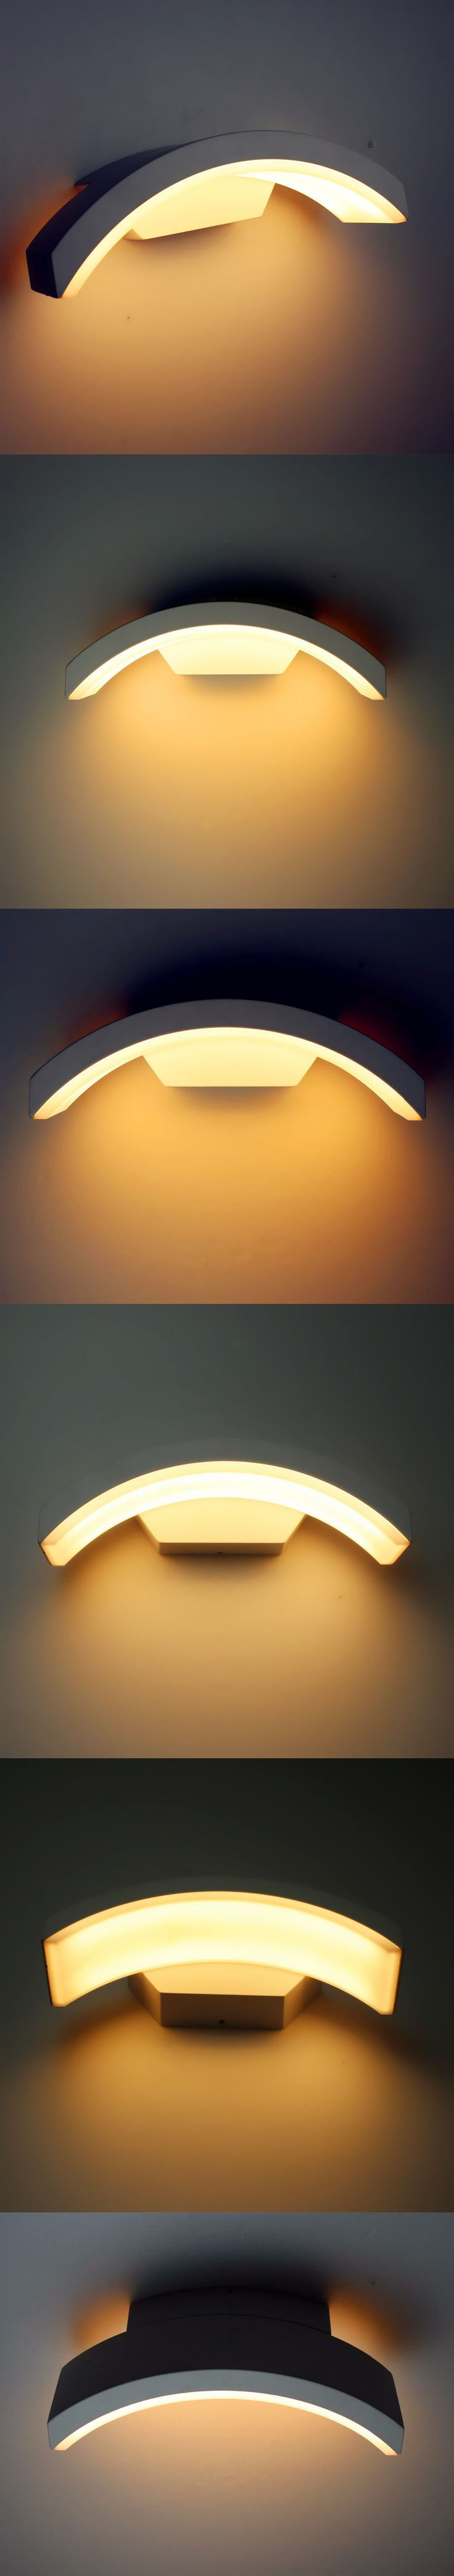 New Modern Led Wall Lamp Wall Lights Led 12W Outdoor Wall Lamps Warm White Home Lighting Sconce Home Decoration Light Fixture  $37.5